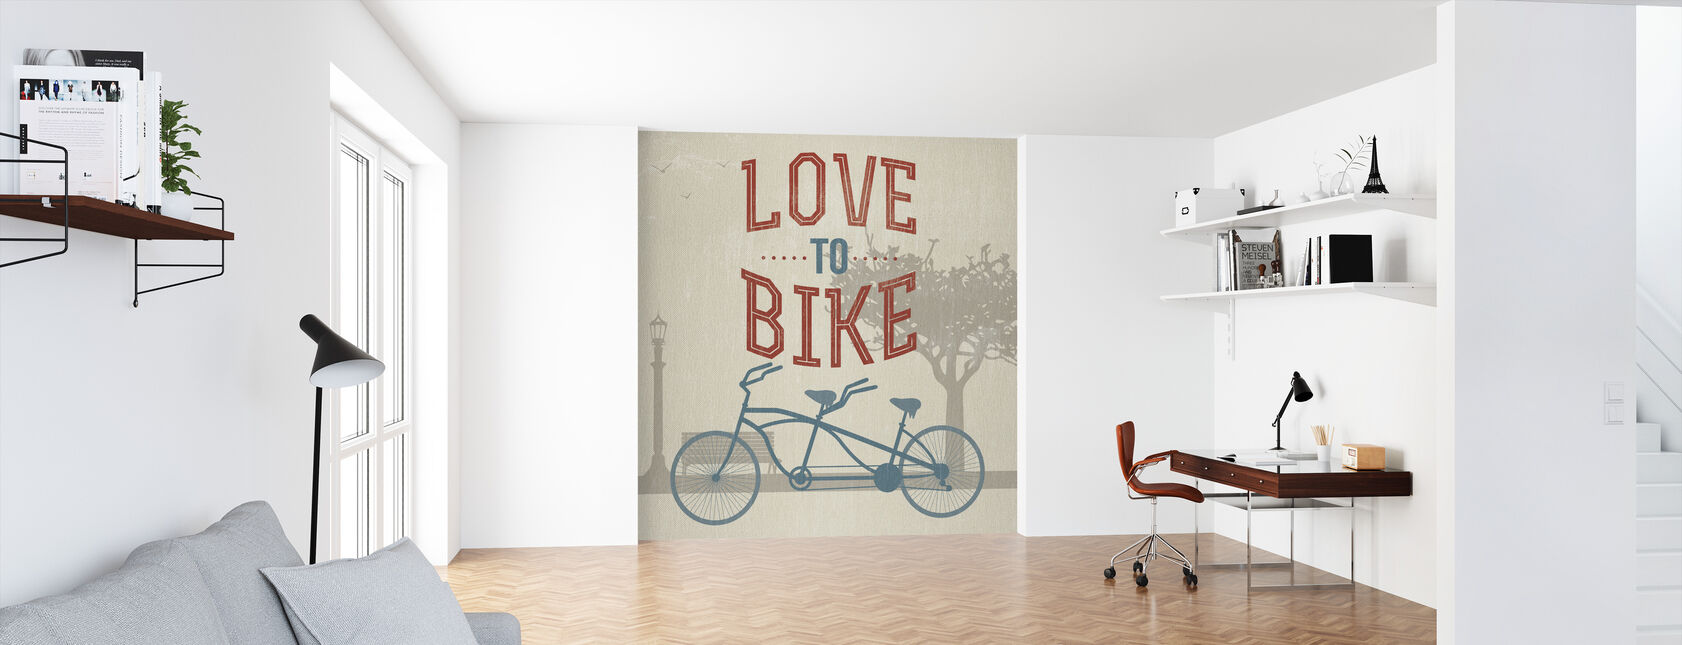 Love to Bike - Wallpaper - Office